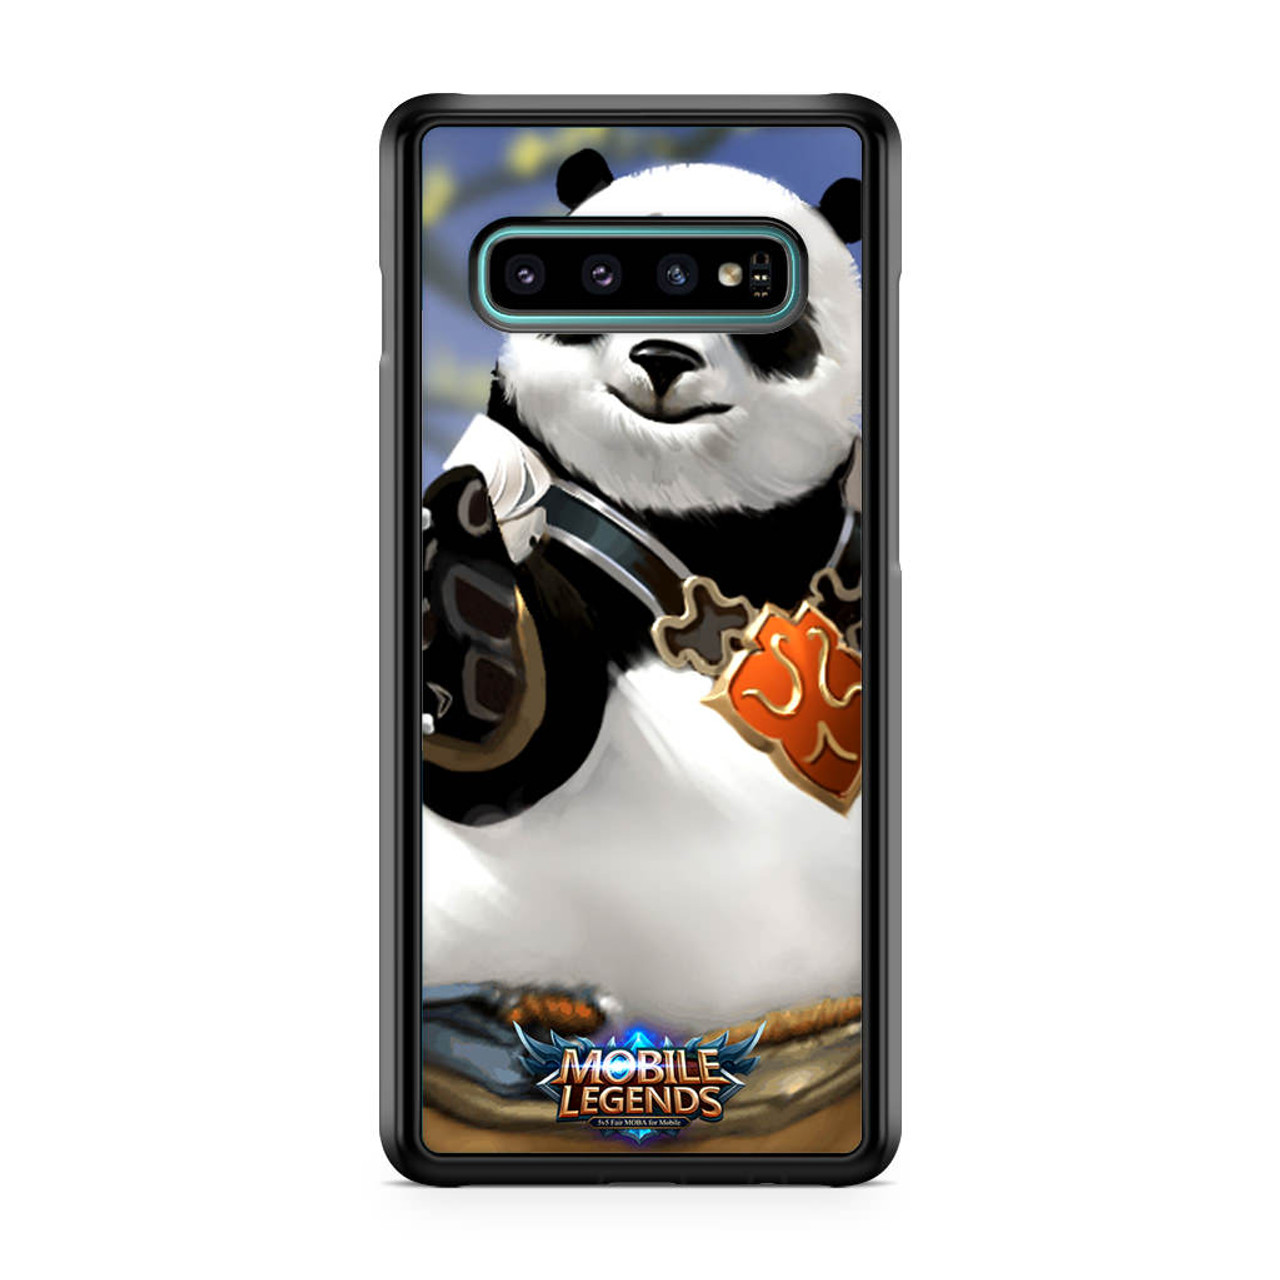 Mobile Legends Akai Panda Warrior Samsung Galaxy S10 Plus Case